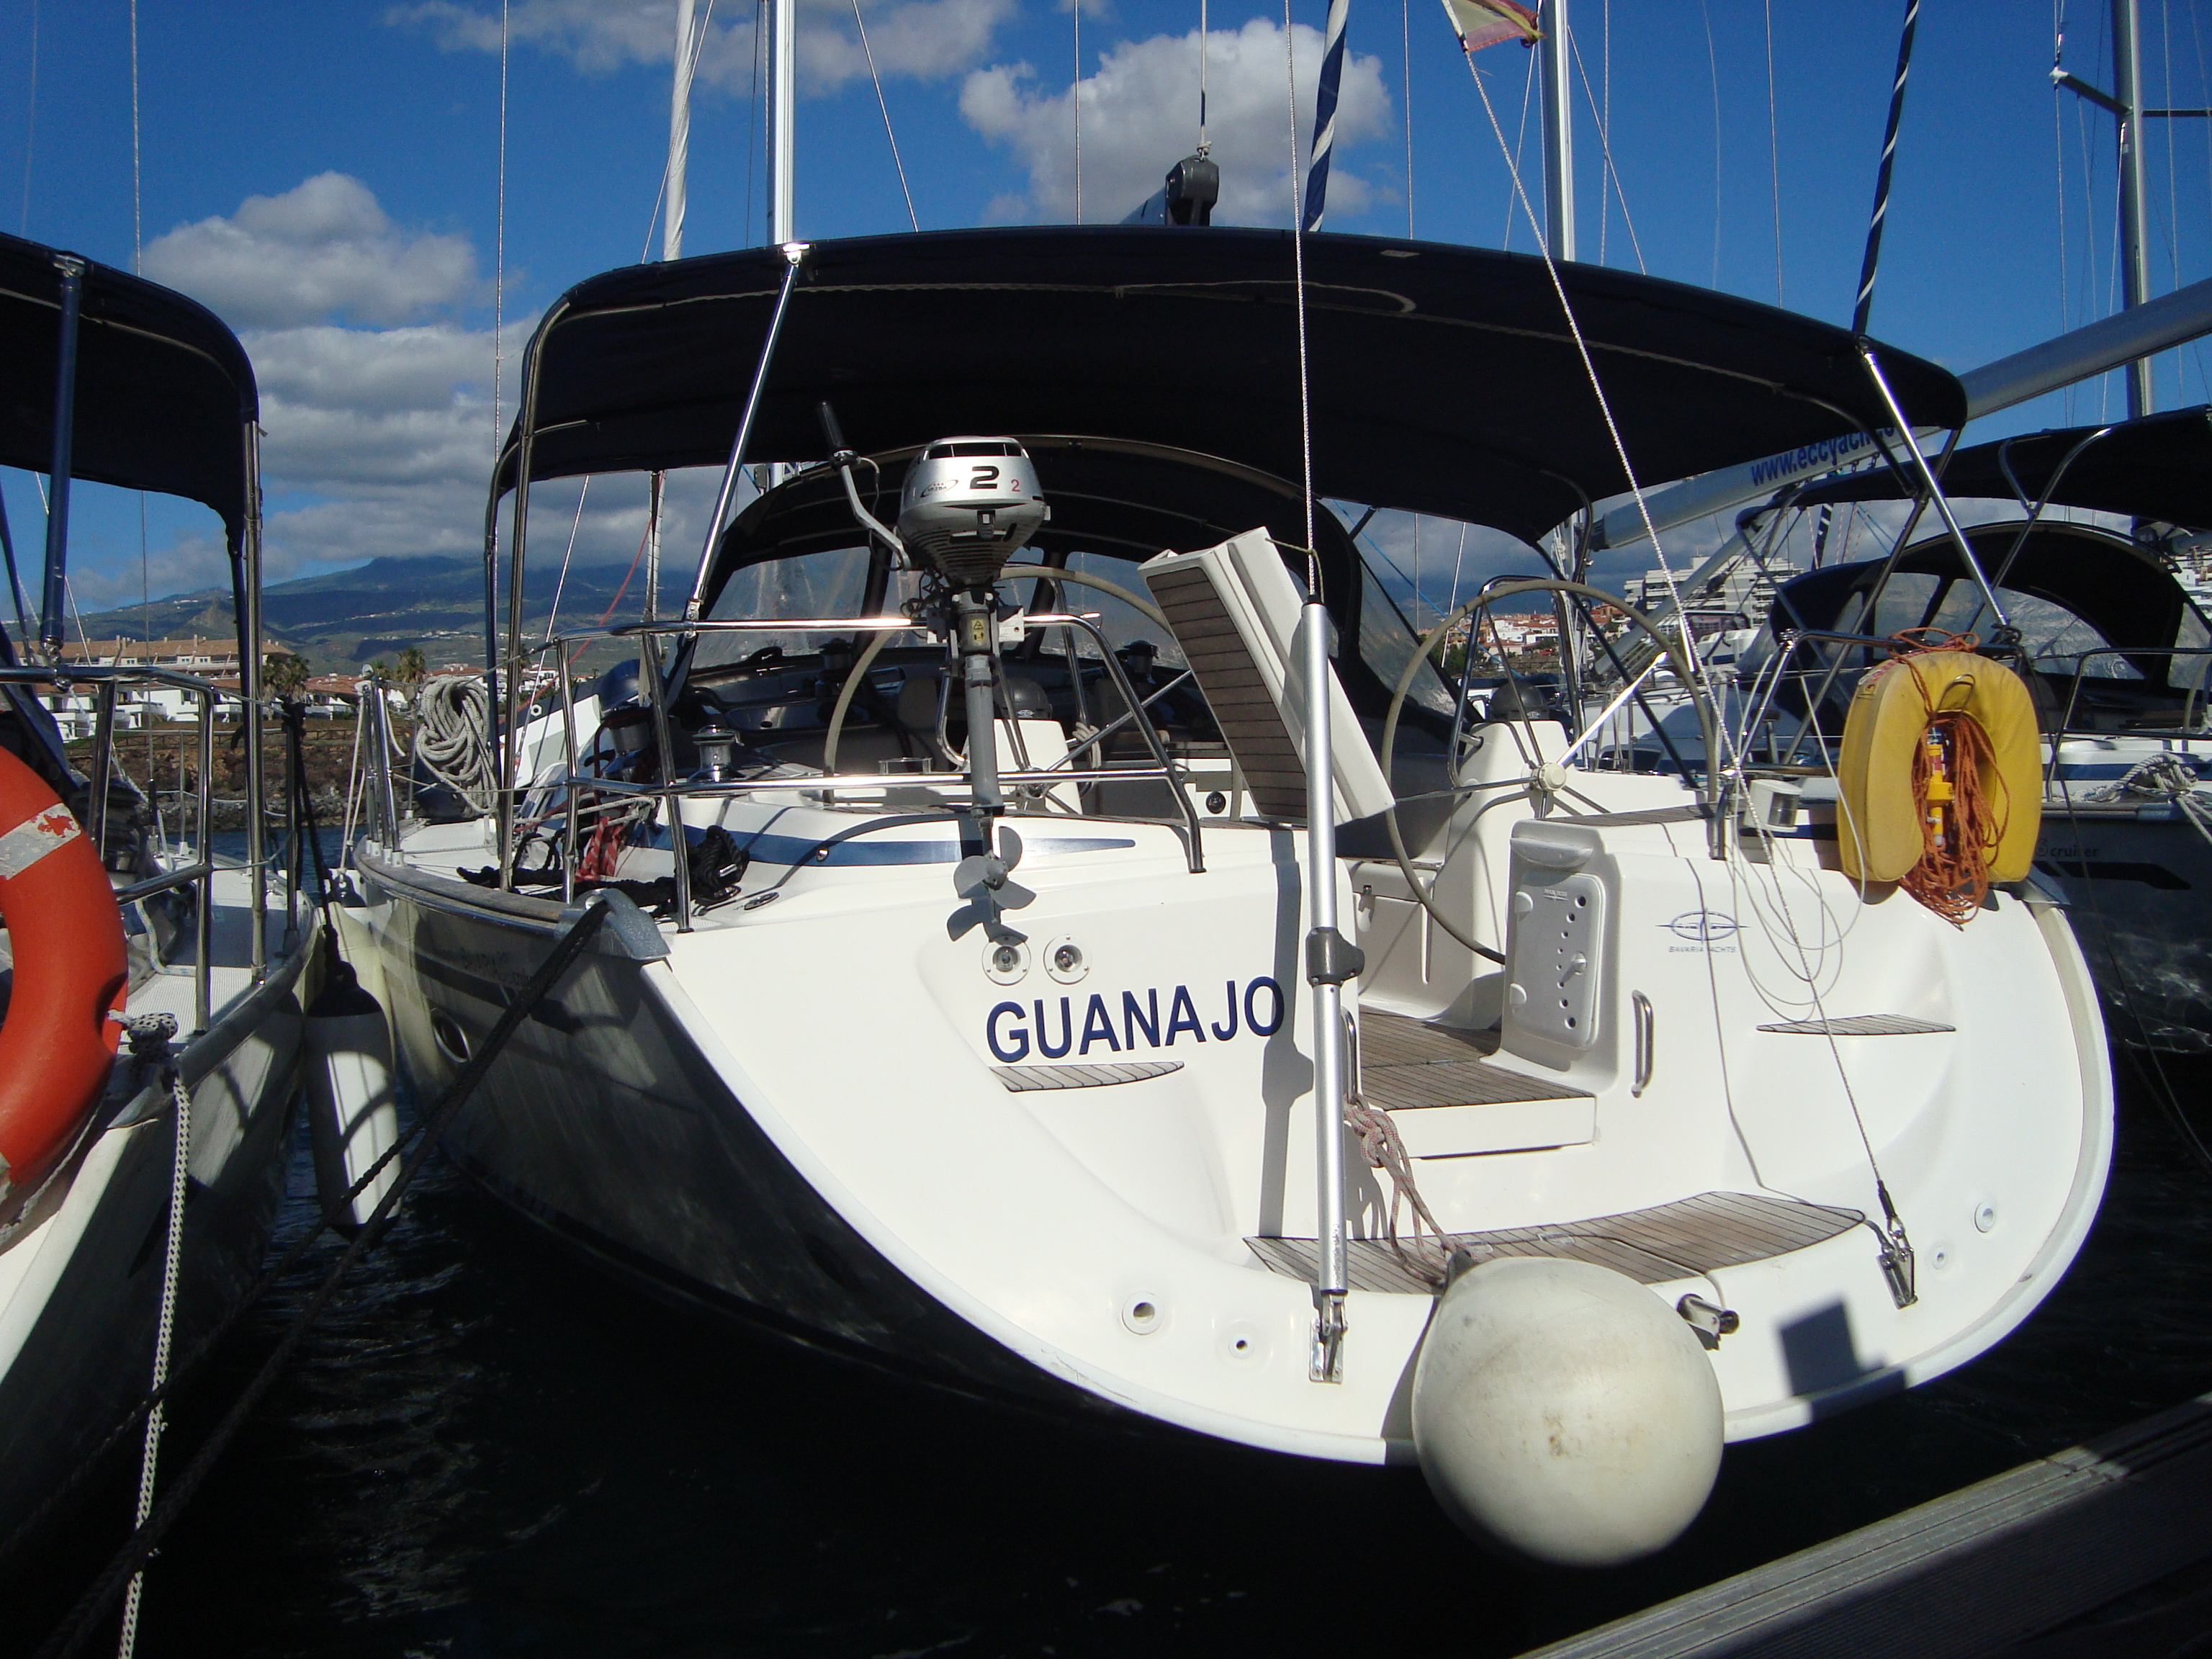 Yacht charter Bavaria 50 Cruiser - Spain, Canary Islands, Radazul, Tenerife